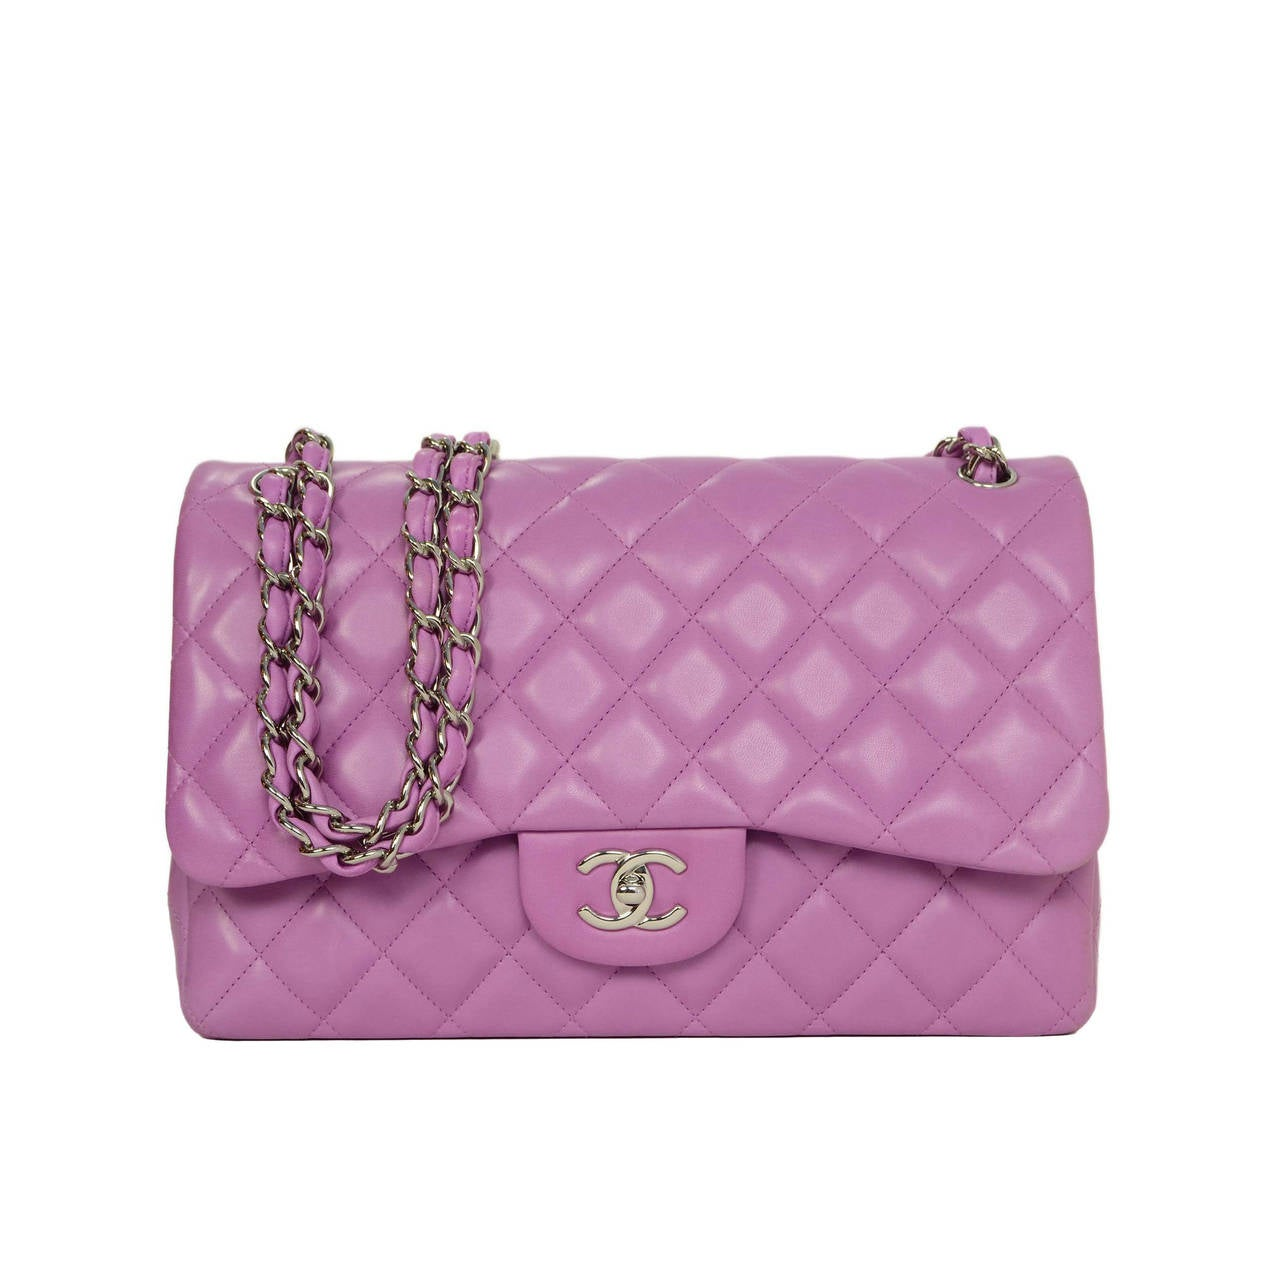 05cc253e7f5521 CHANEL Lavender Quilted Lambskin Jumbo Classic Double Flap Bag SHW For Sale